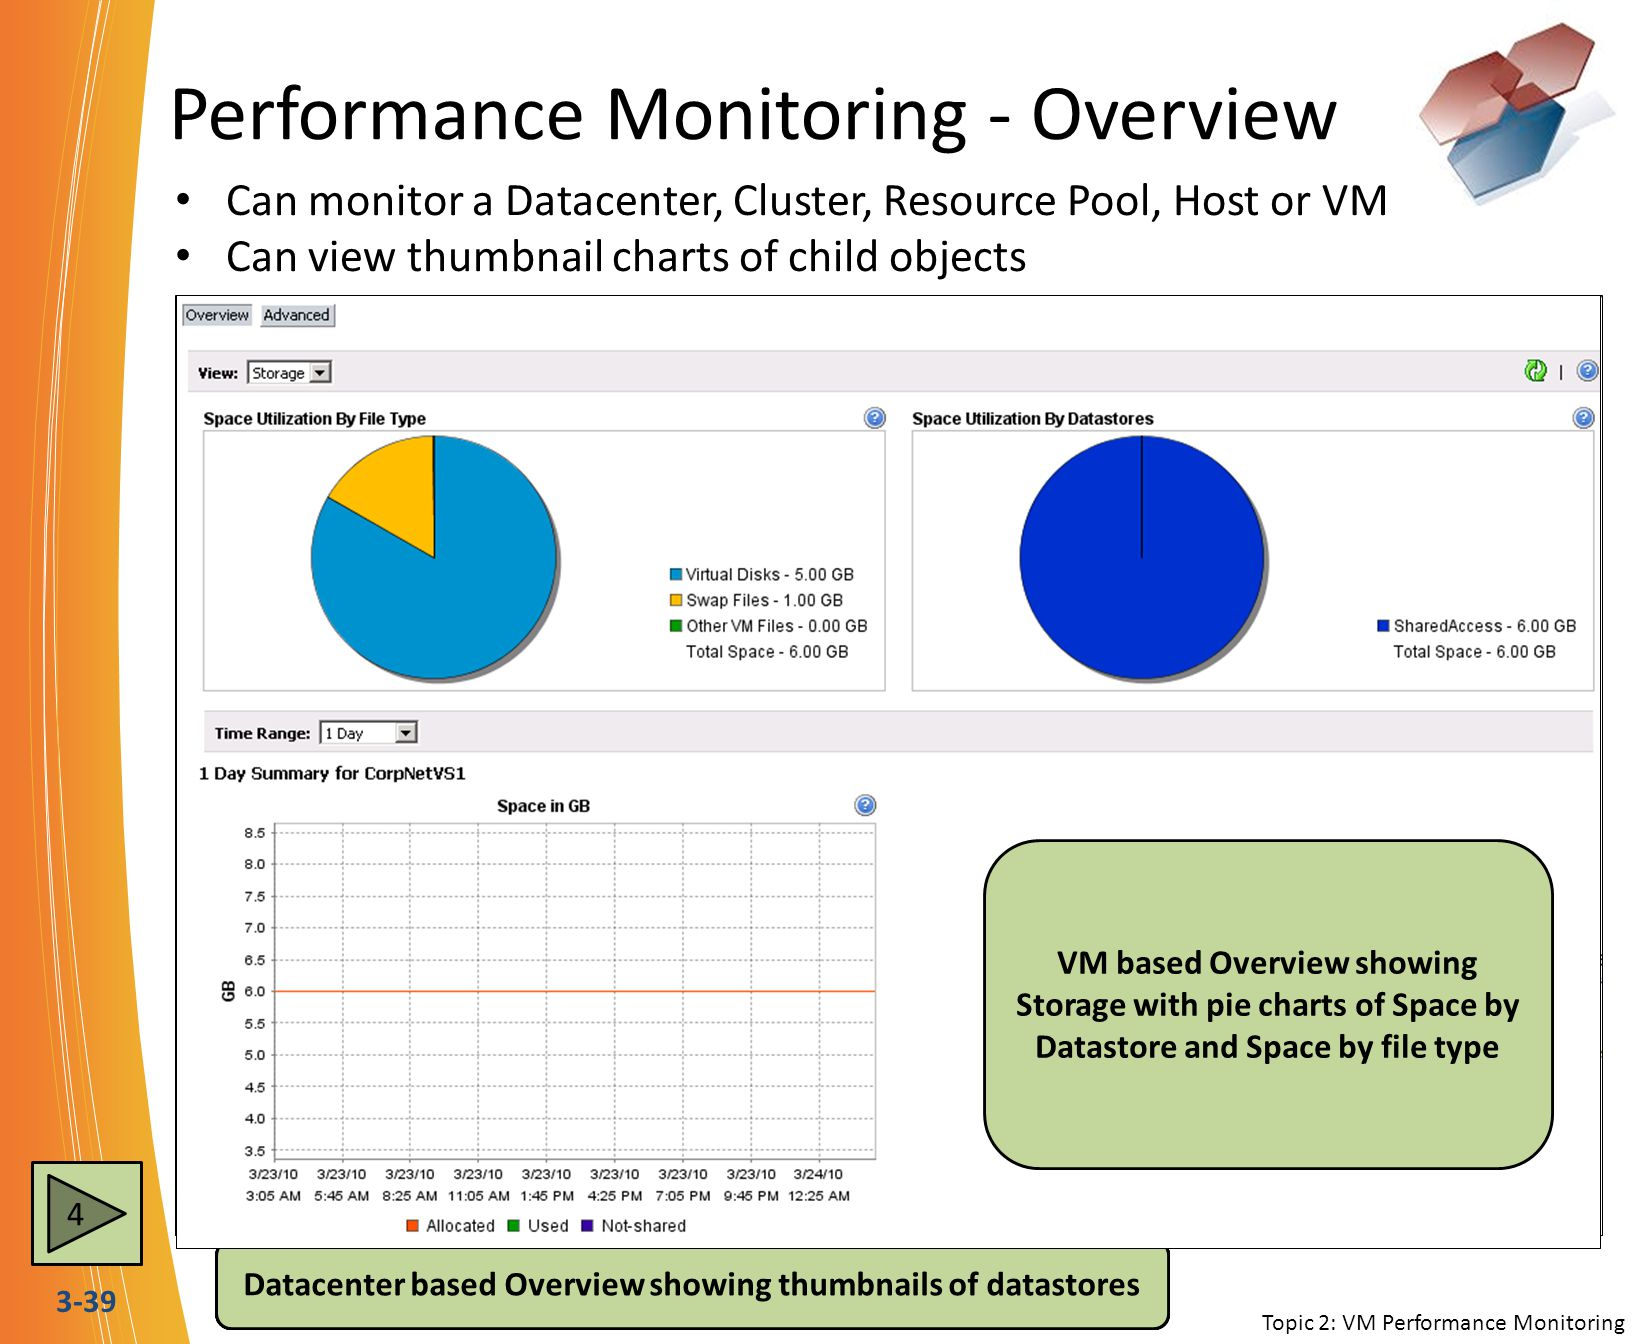 Performance Monitoring - Overview